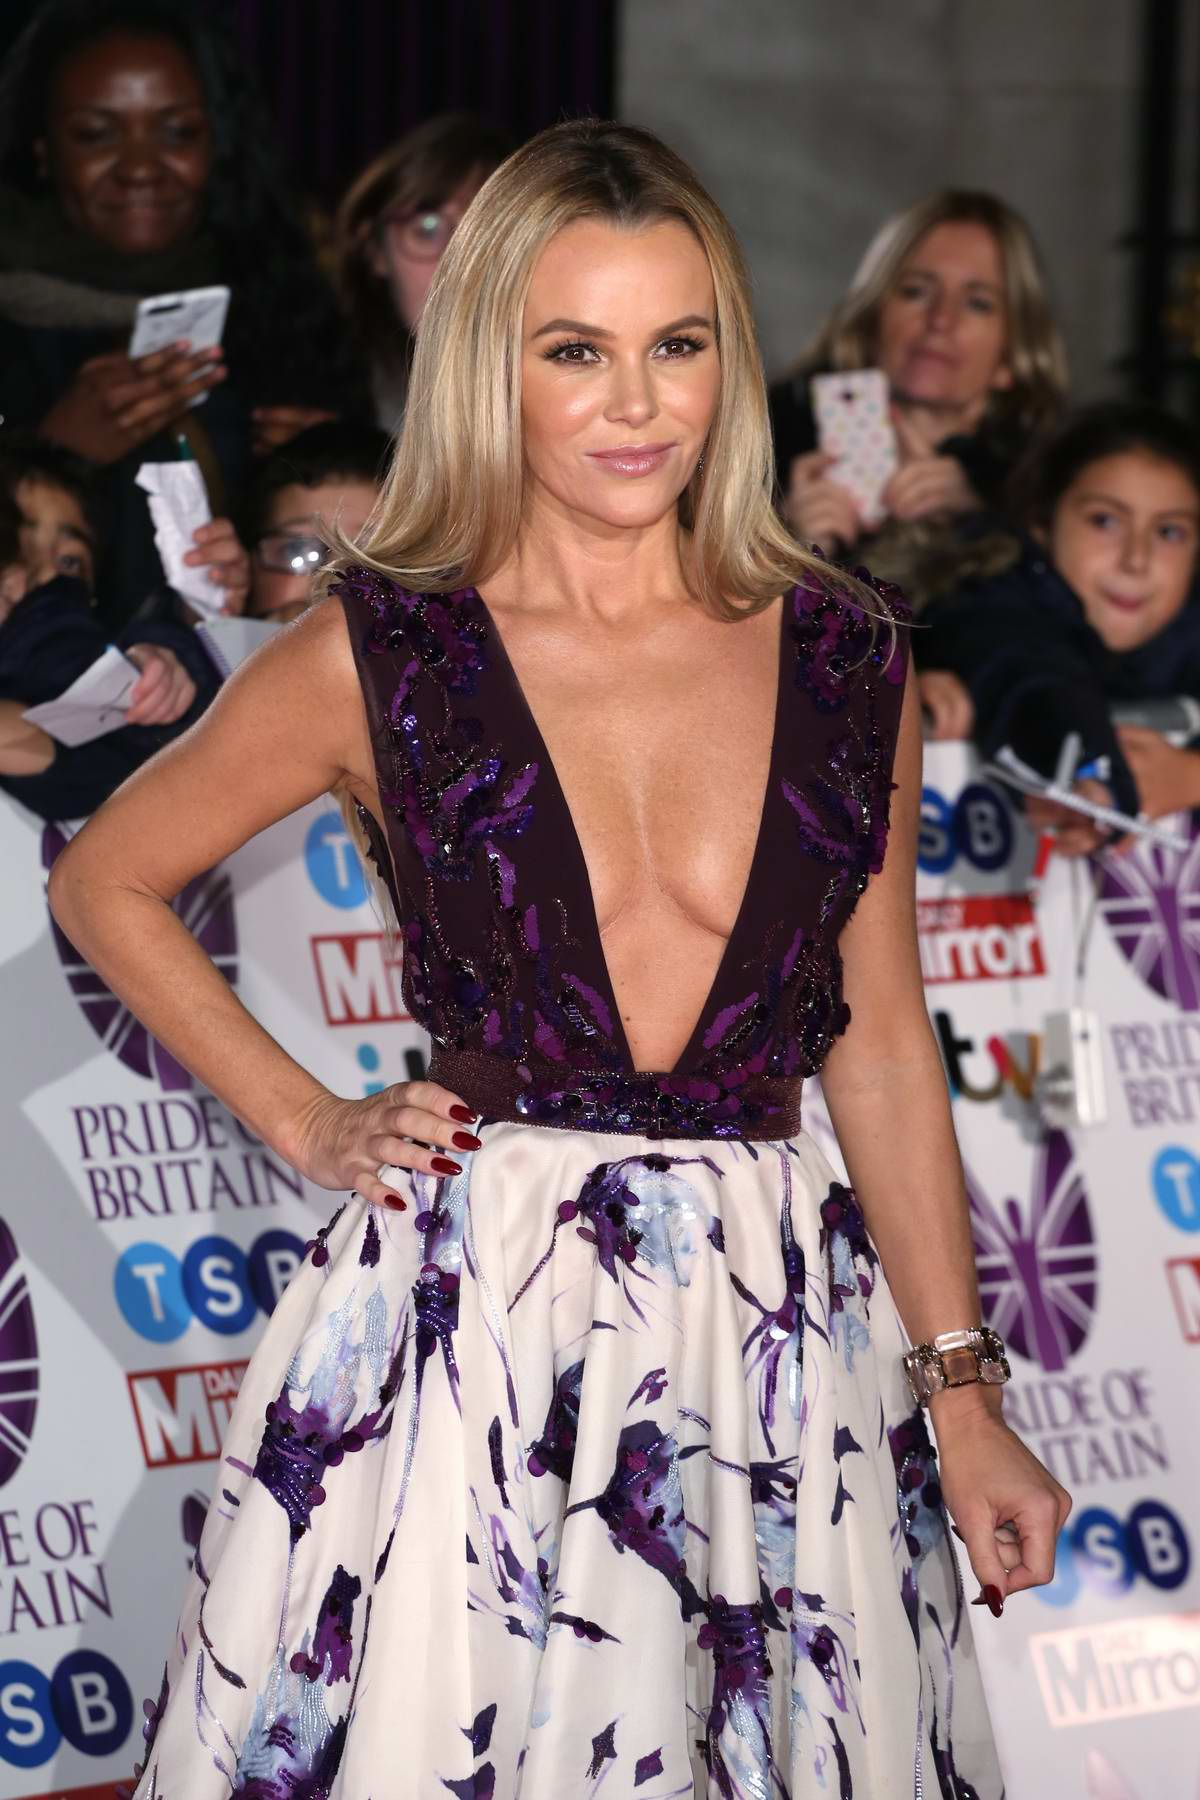 Amanda Holden at the Pride of Britain Awards held at the Grosvenor House in London